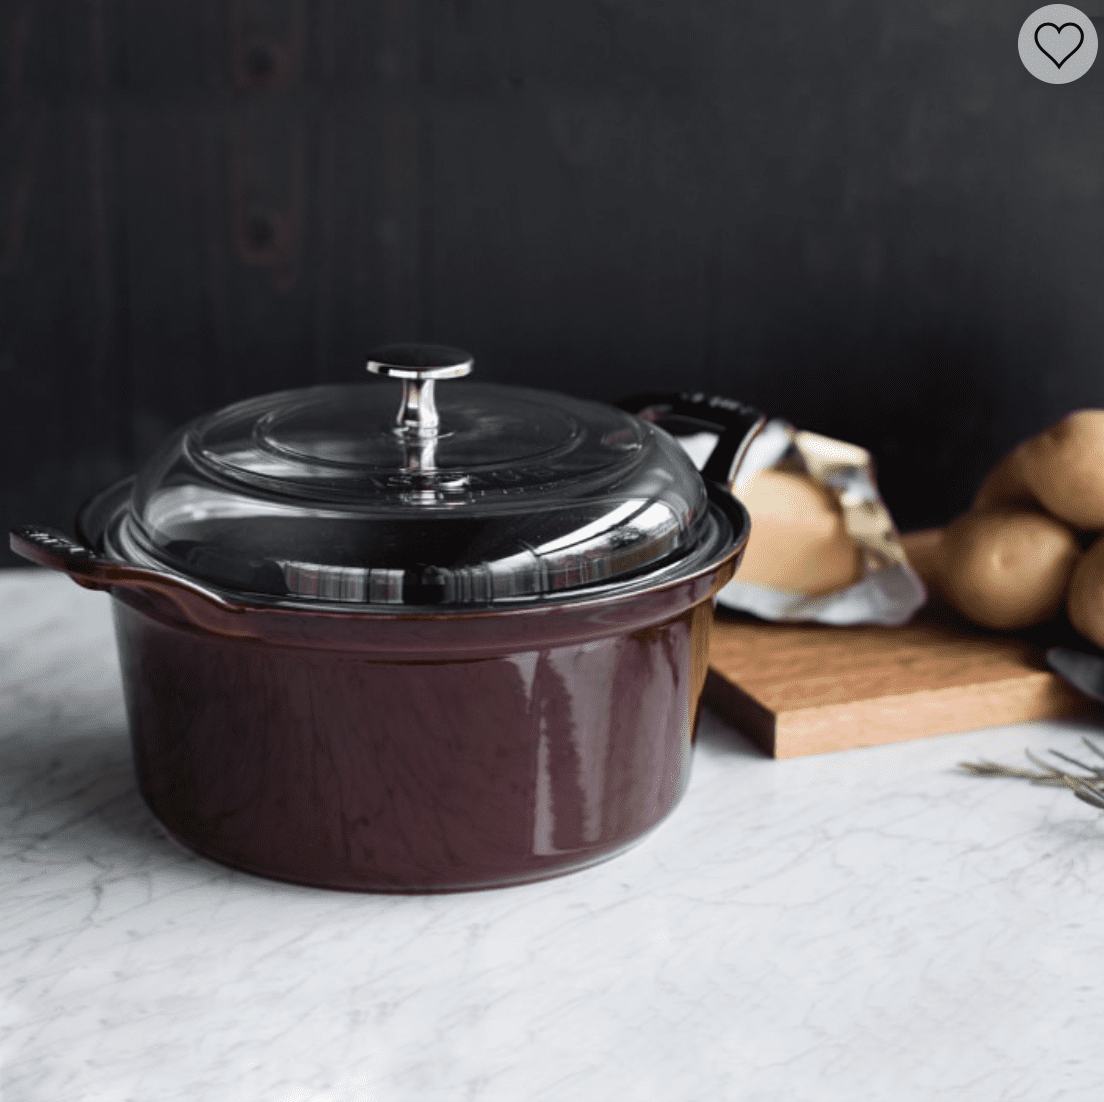 Williams-Sonoma: Extra 50% off clearance items